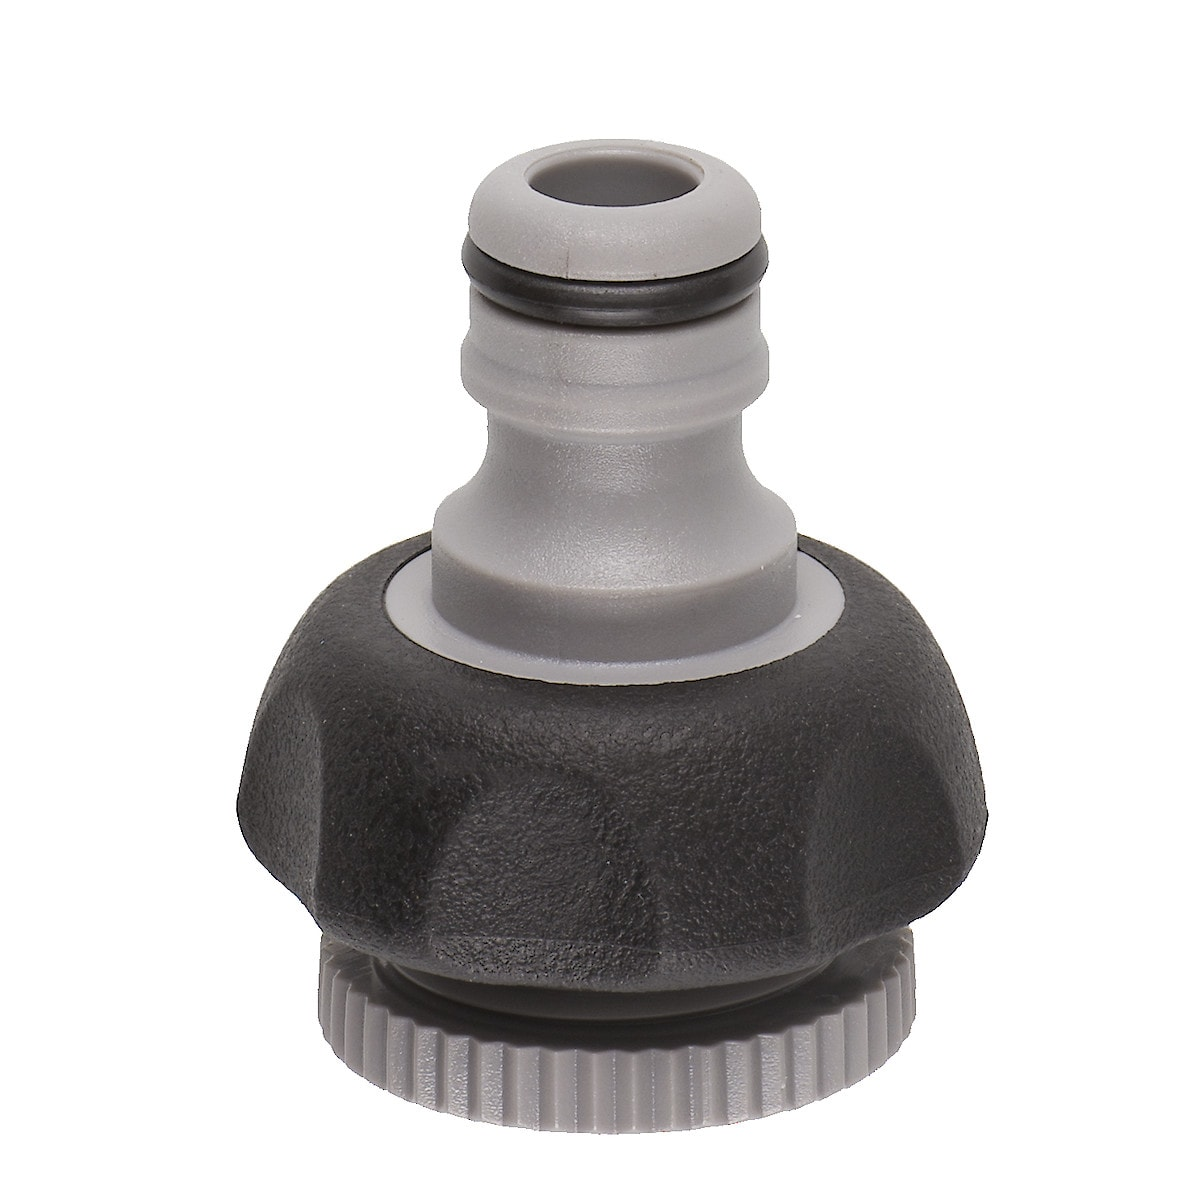 Threaded Tap Connector 1/2